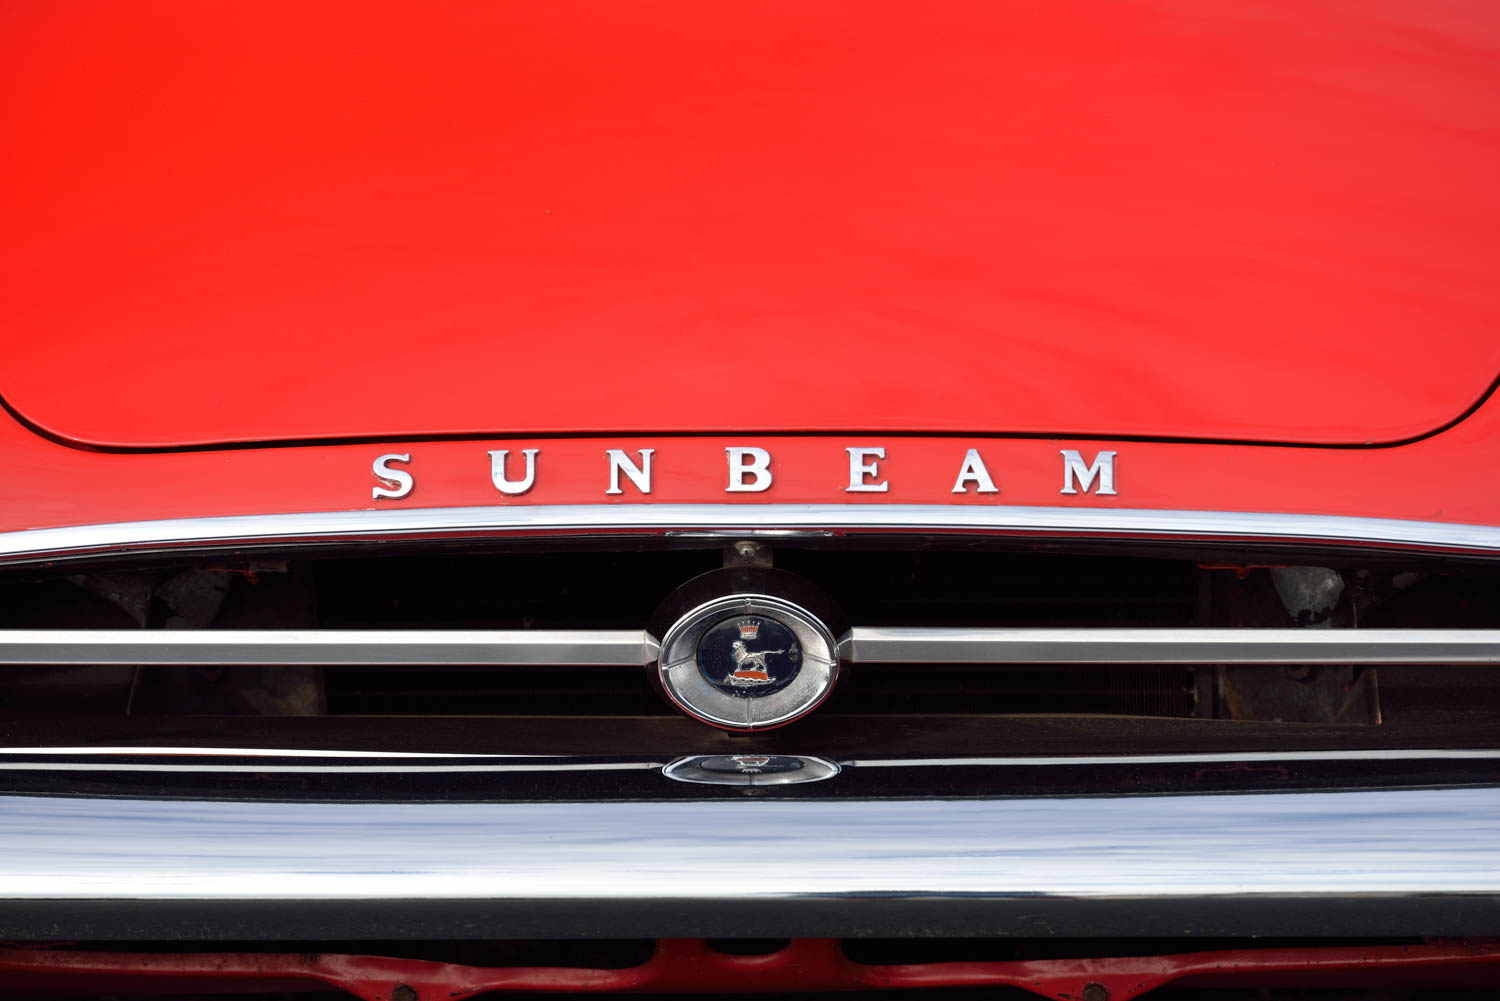 1965 Sunbeam Tiger MKI grille detail